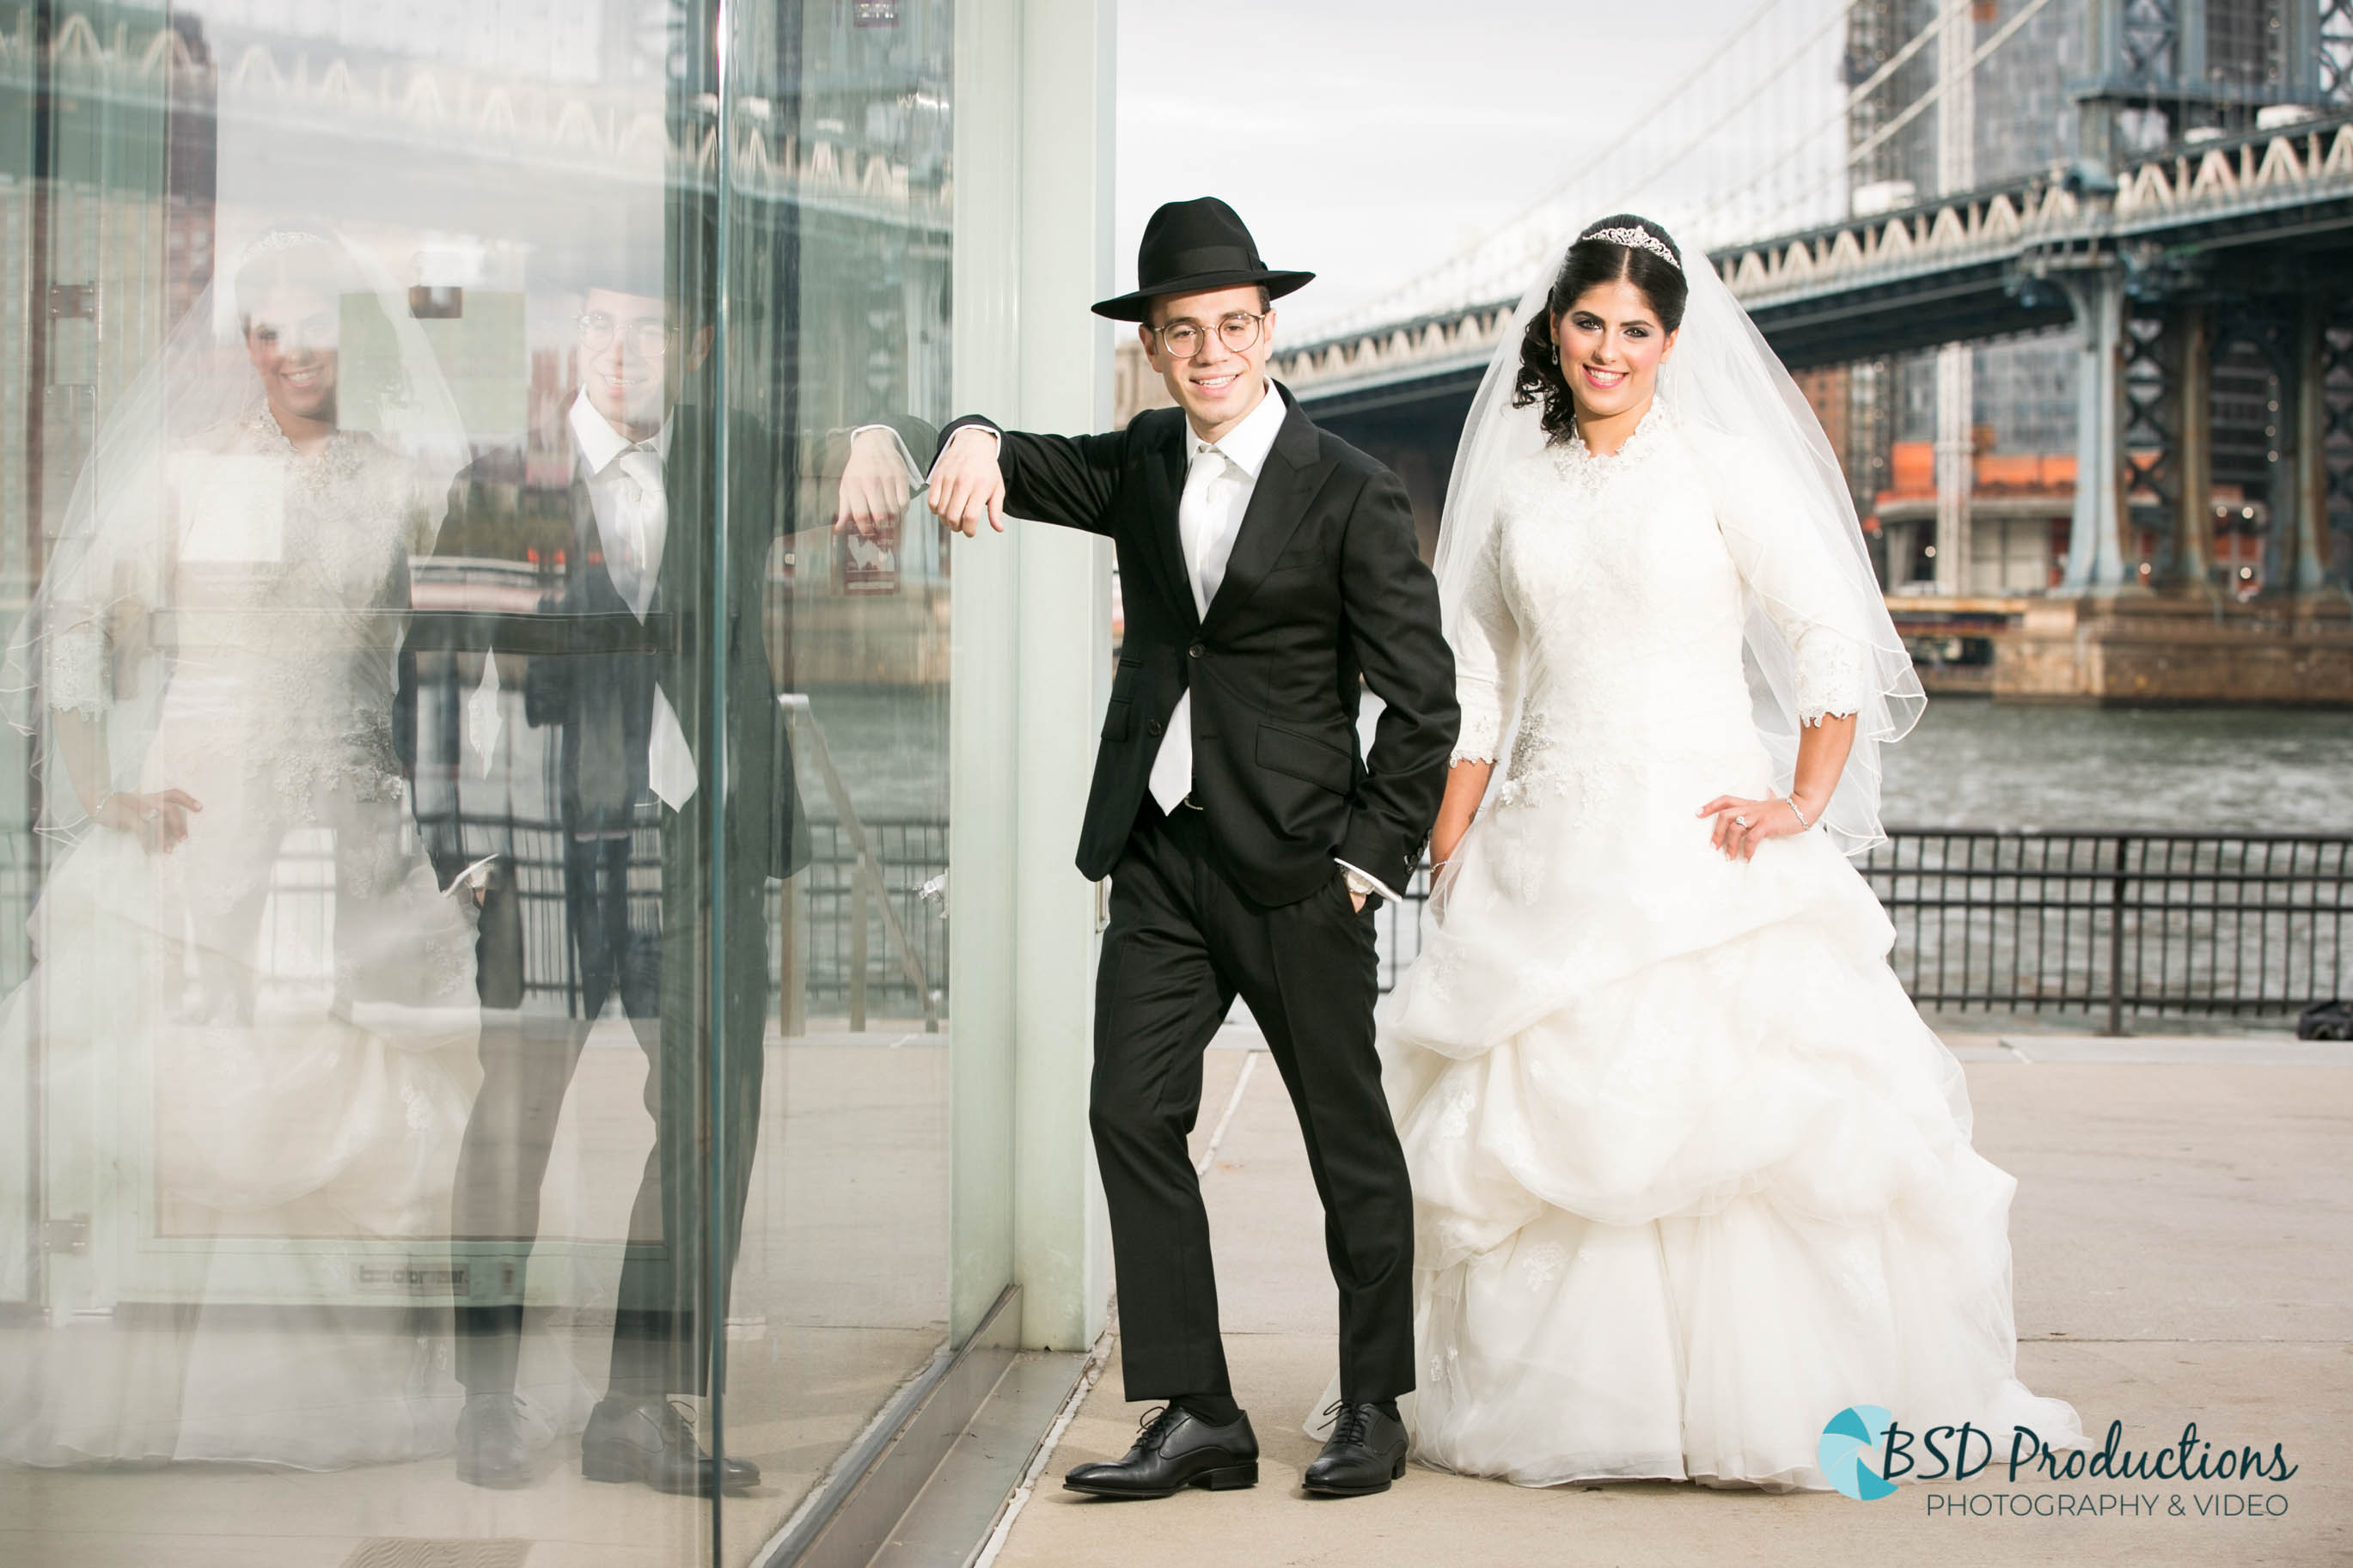 UH5A0105 Wedding – BSD Productions Photography